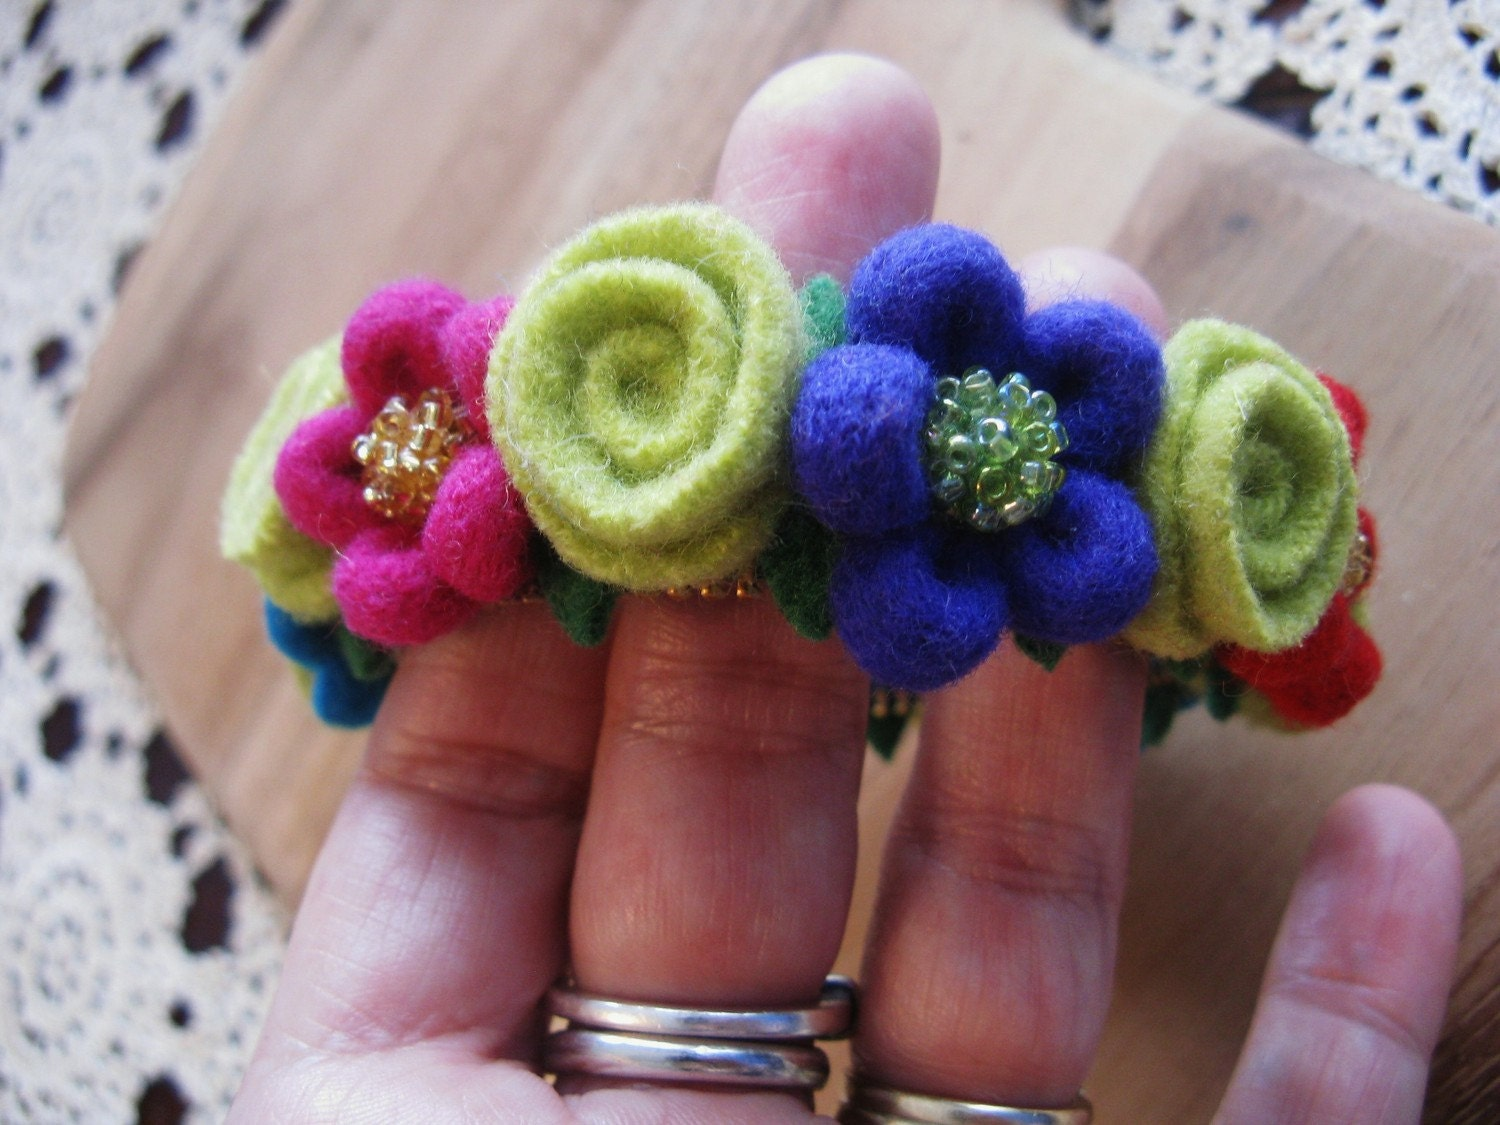 Felt daisy and rose zipper bracelet